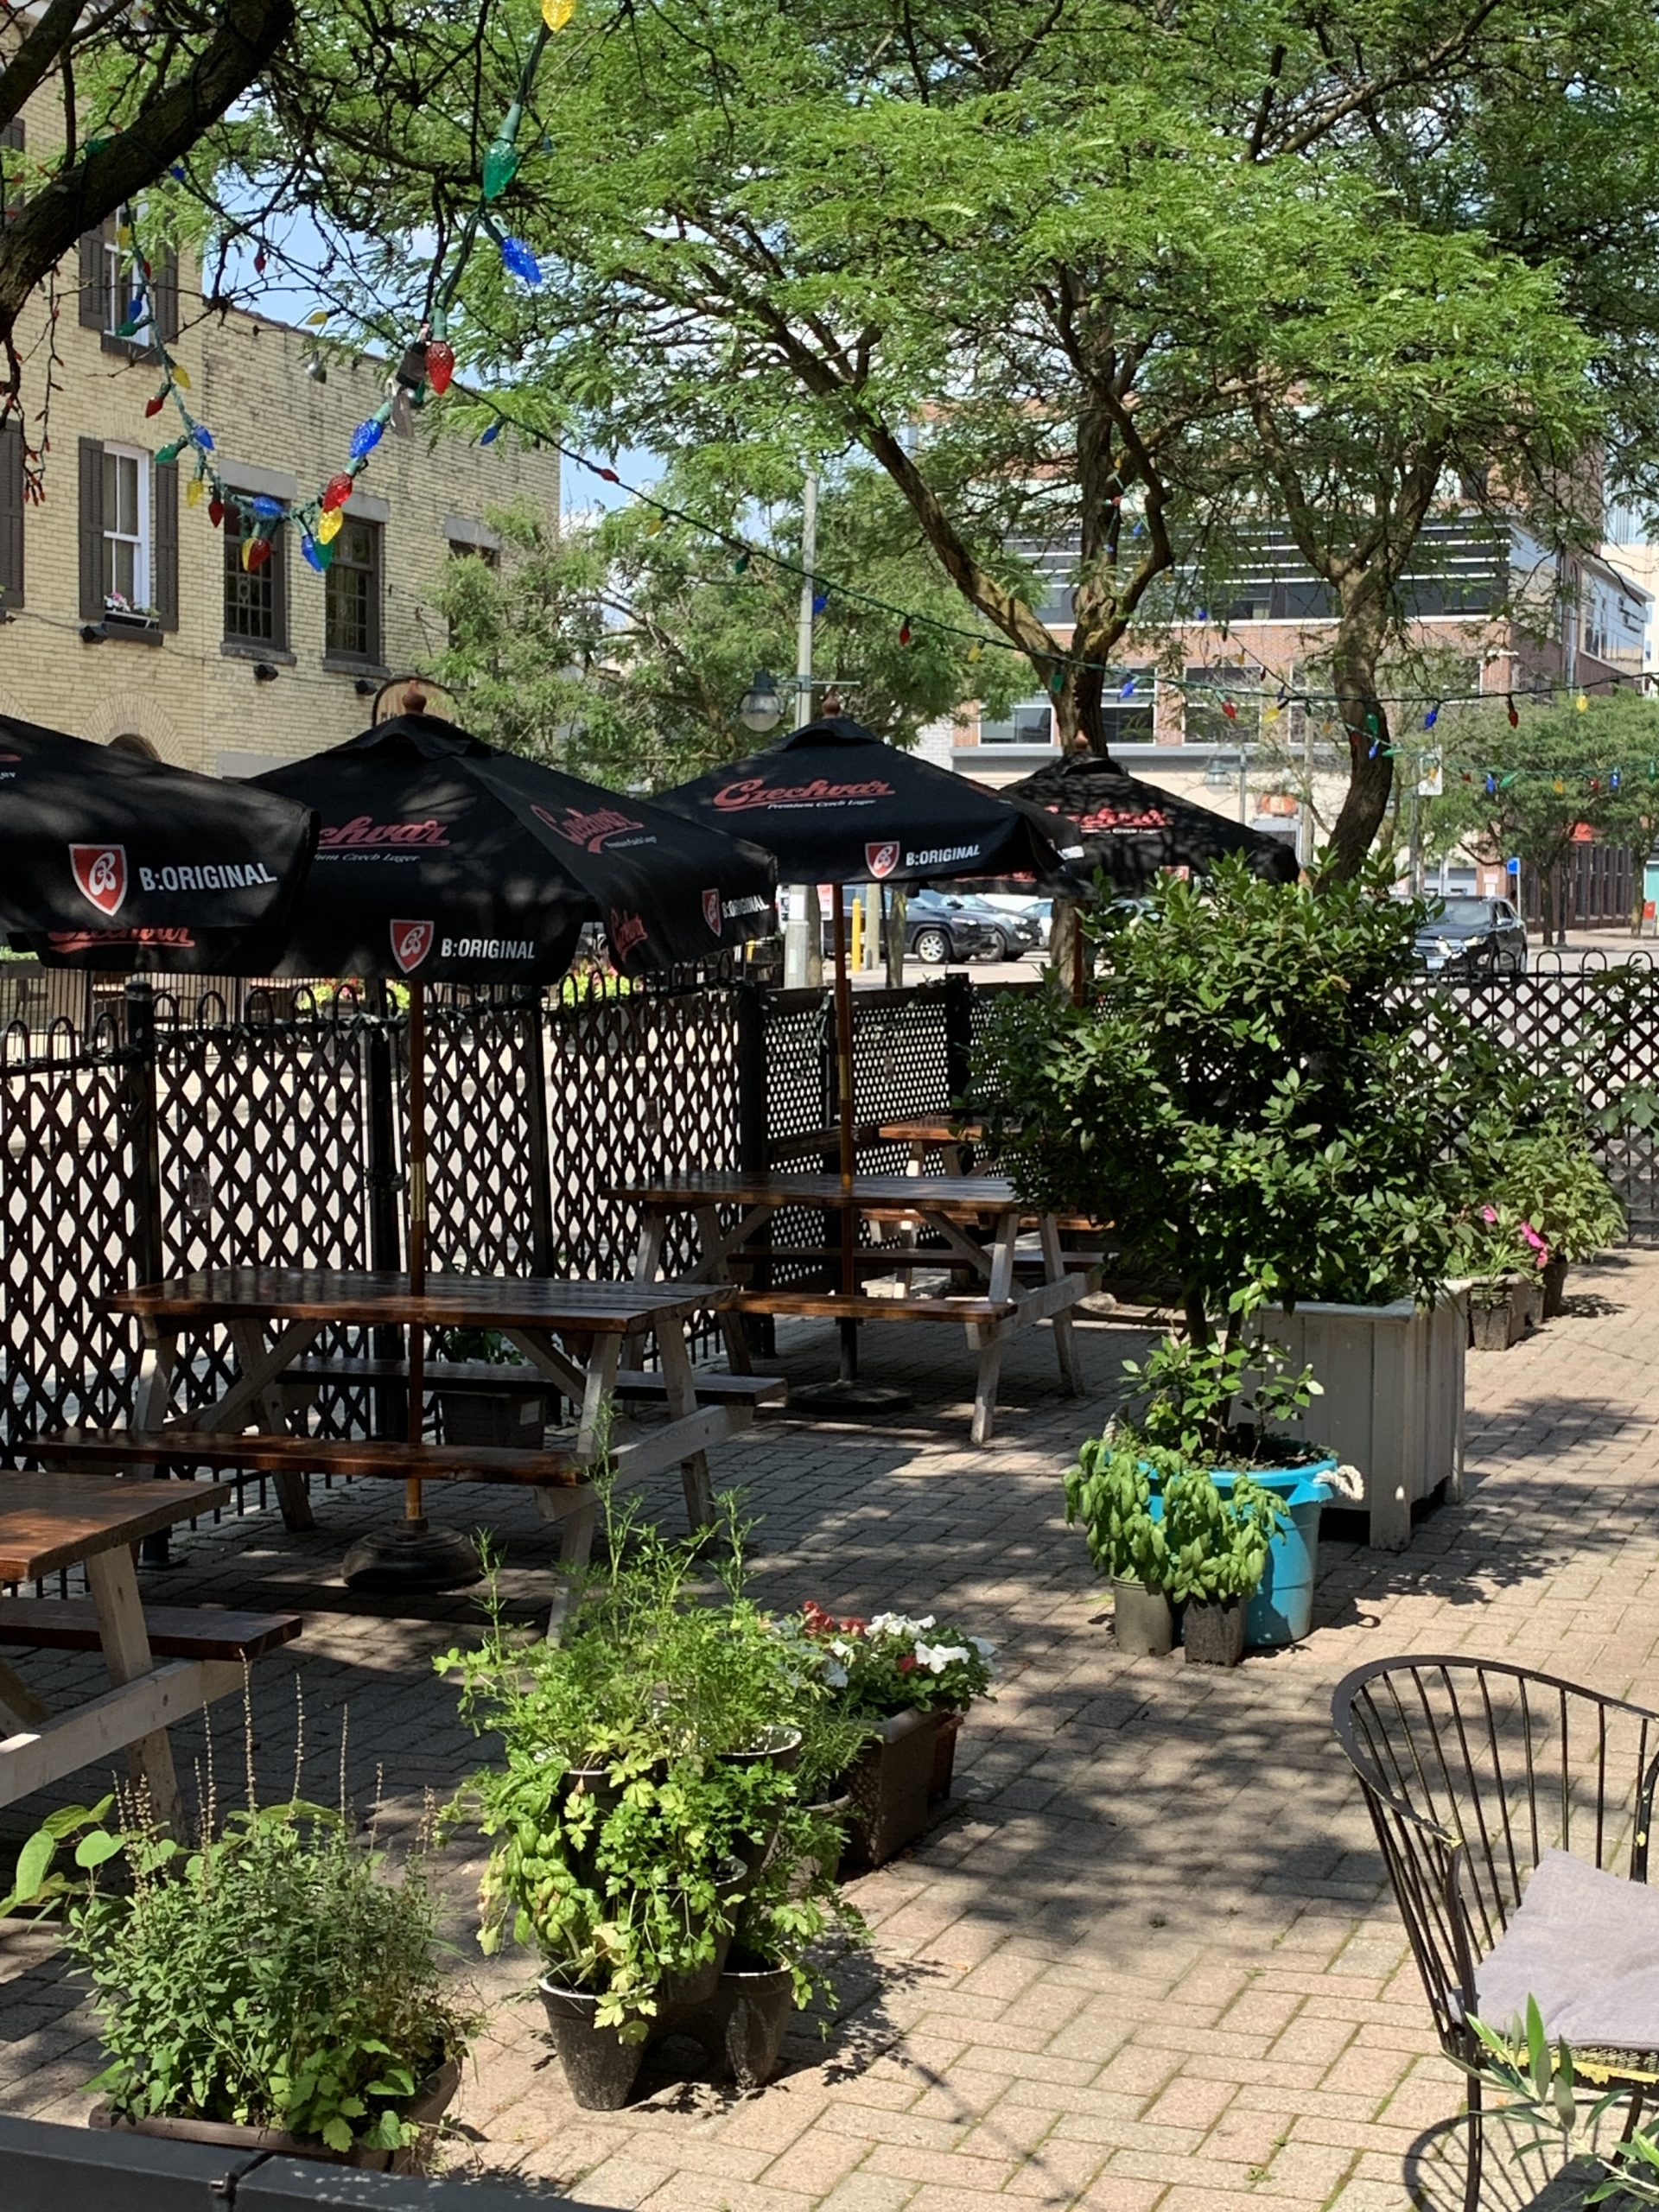 An enclosed patio with planters, picnic tables, and umbrellas at Milos.